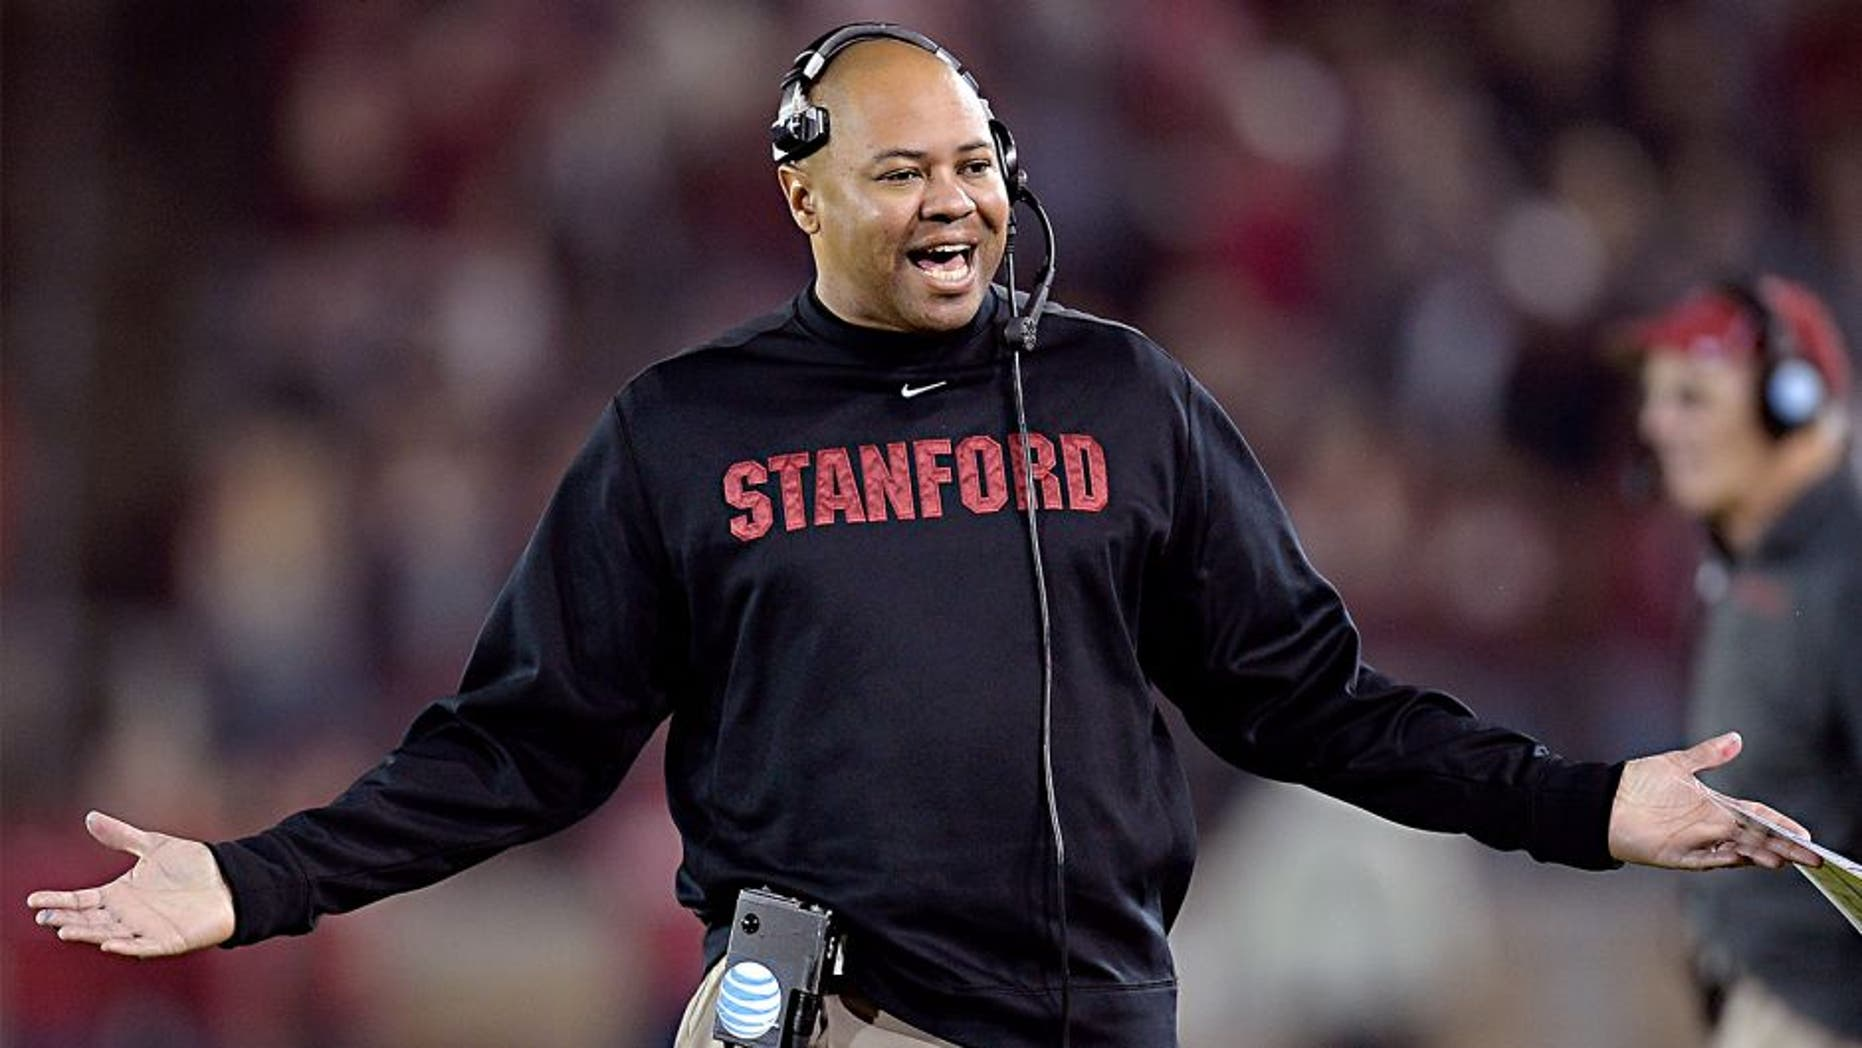 PALO ALTO, CA - NOVEMBER 30: Head Coach David Shaw of the Stanford Cardinal reacts to an official's personal foul call against his team for the Notre Dame Fighting Irish during the third quarter at Stanford Stadium on November 30, 2013 in Palo Alto, California. The call was reversed and no penalty was assessed to Stanford. (Photo by Thearon W. Henderson/Getty Images)